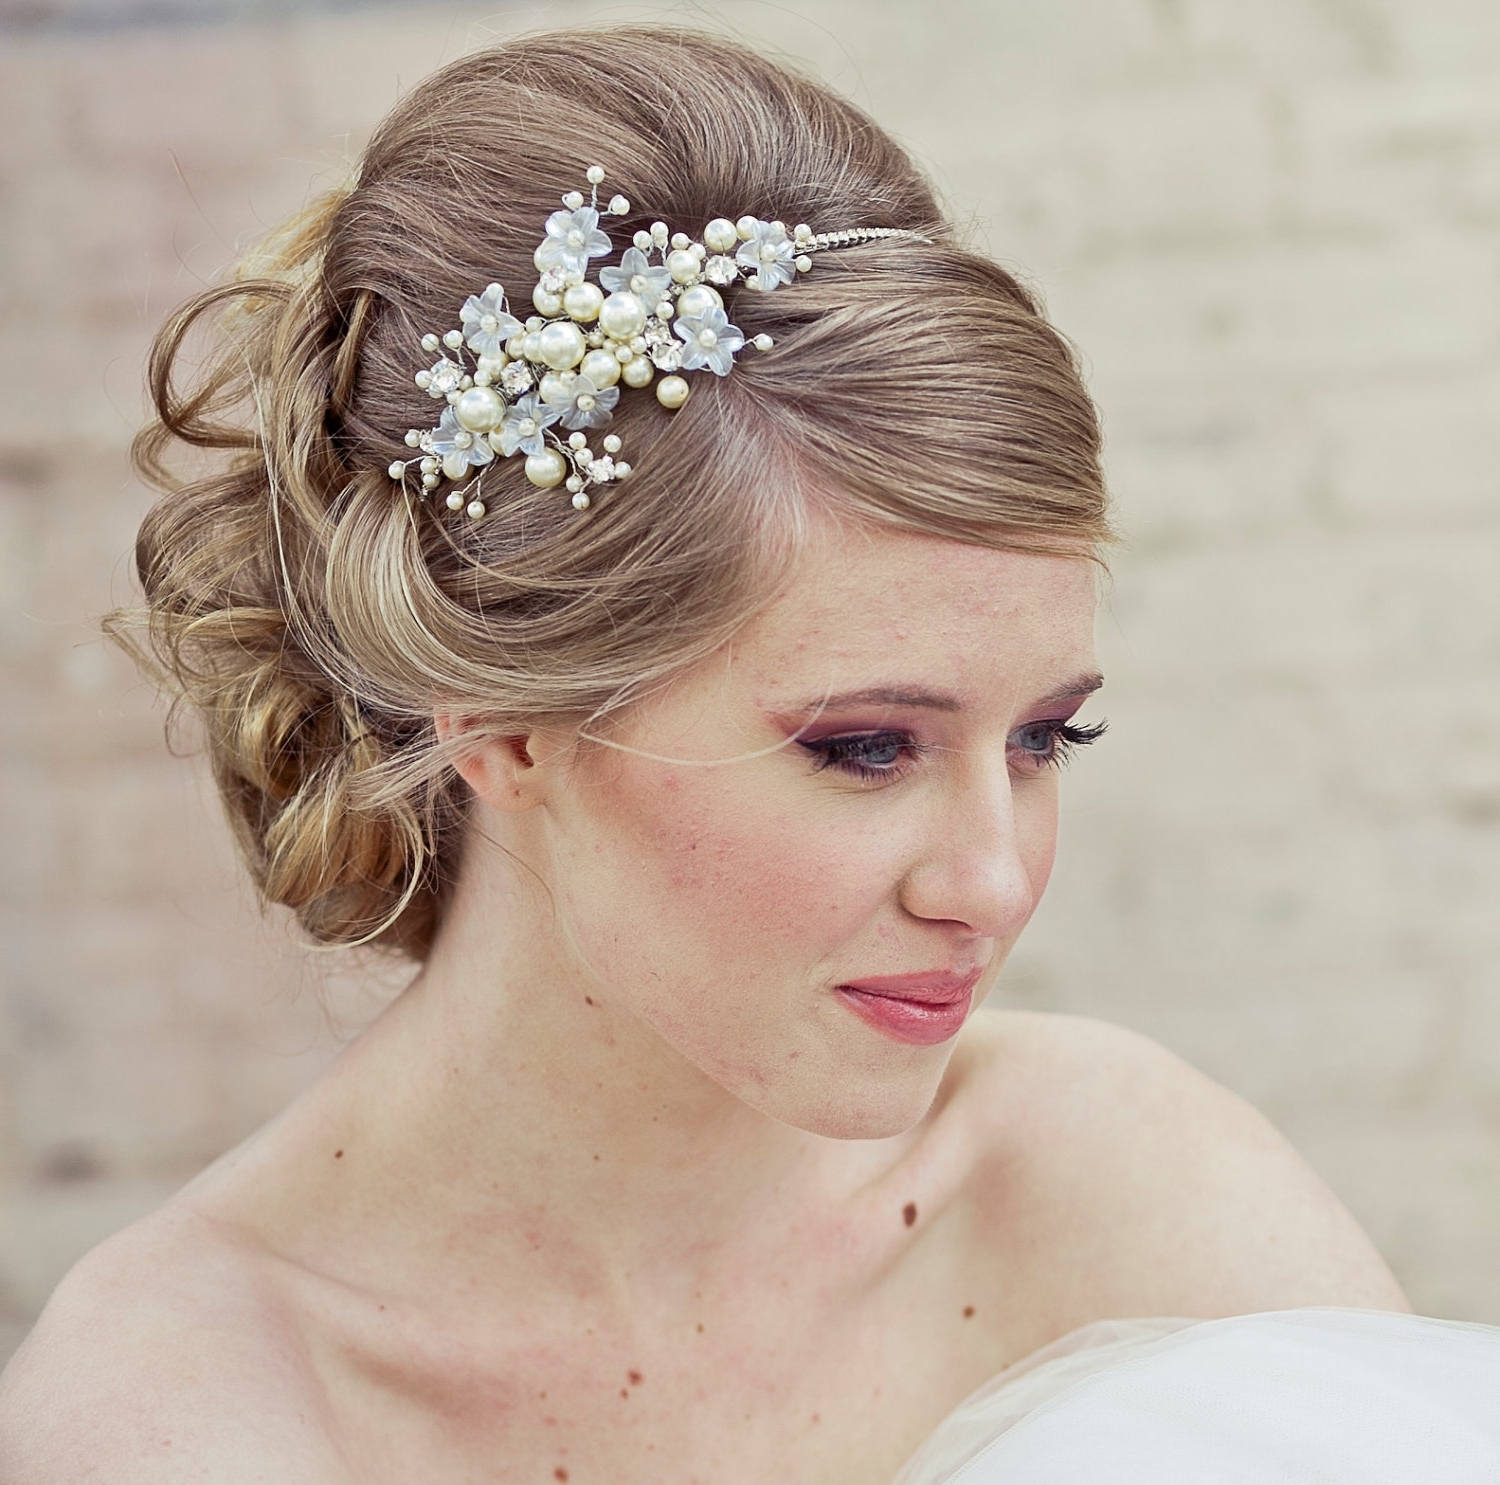 Vintage Intended For Favorite Wedding Hairstyles For Long Hair With A Tiara (View 11 of 15)